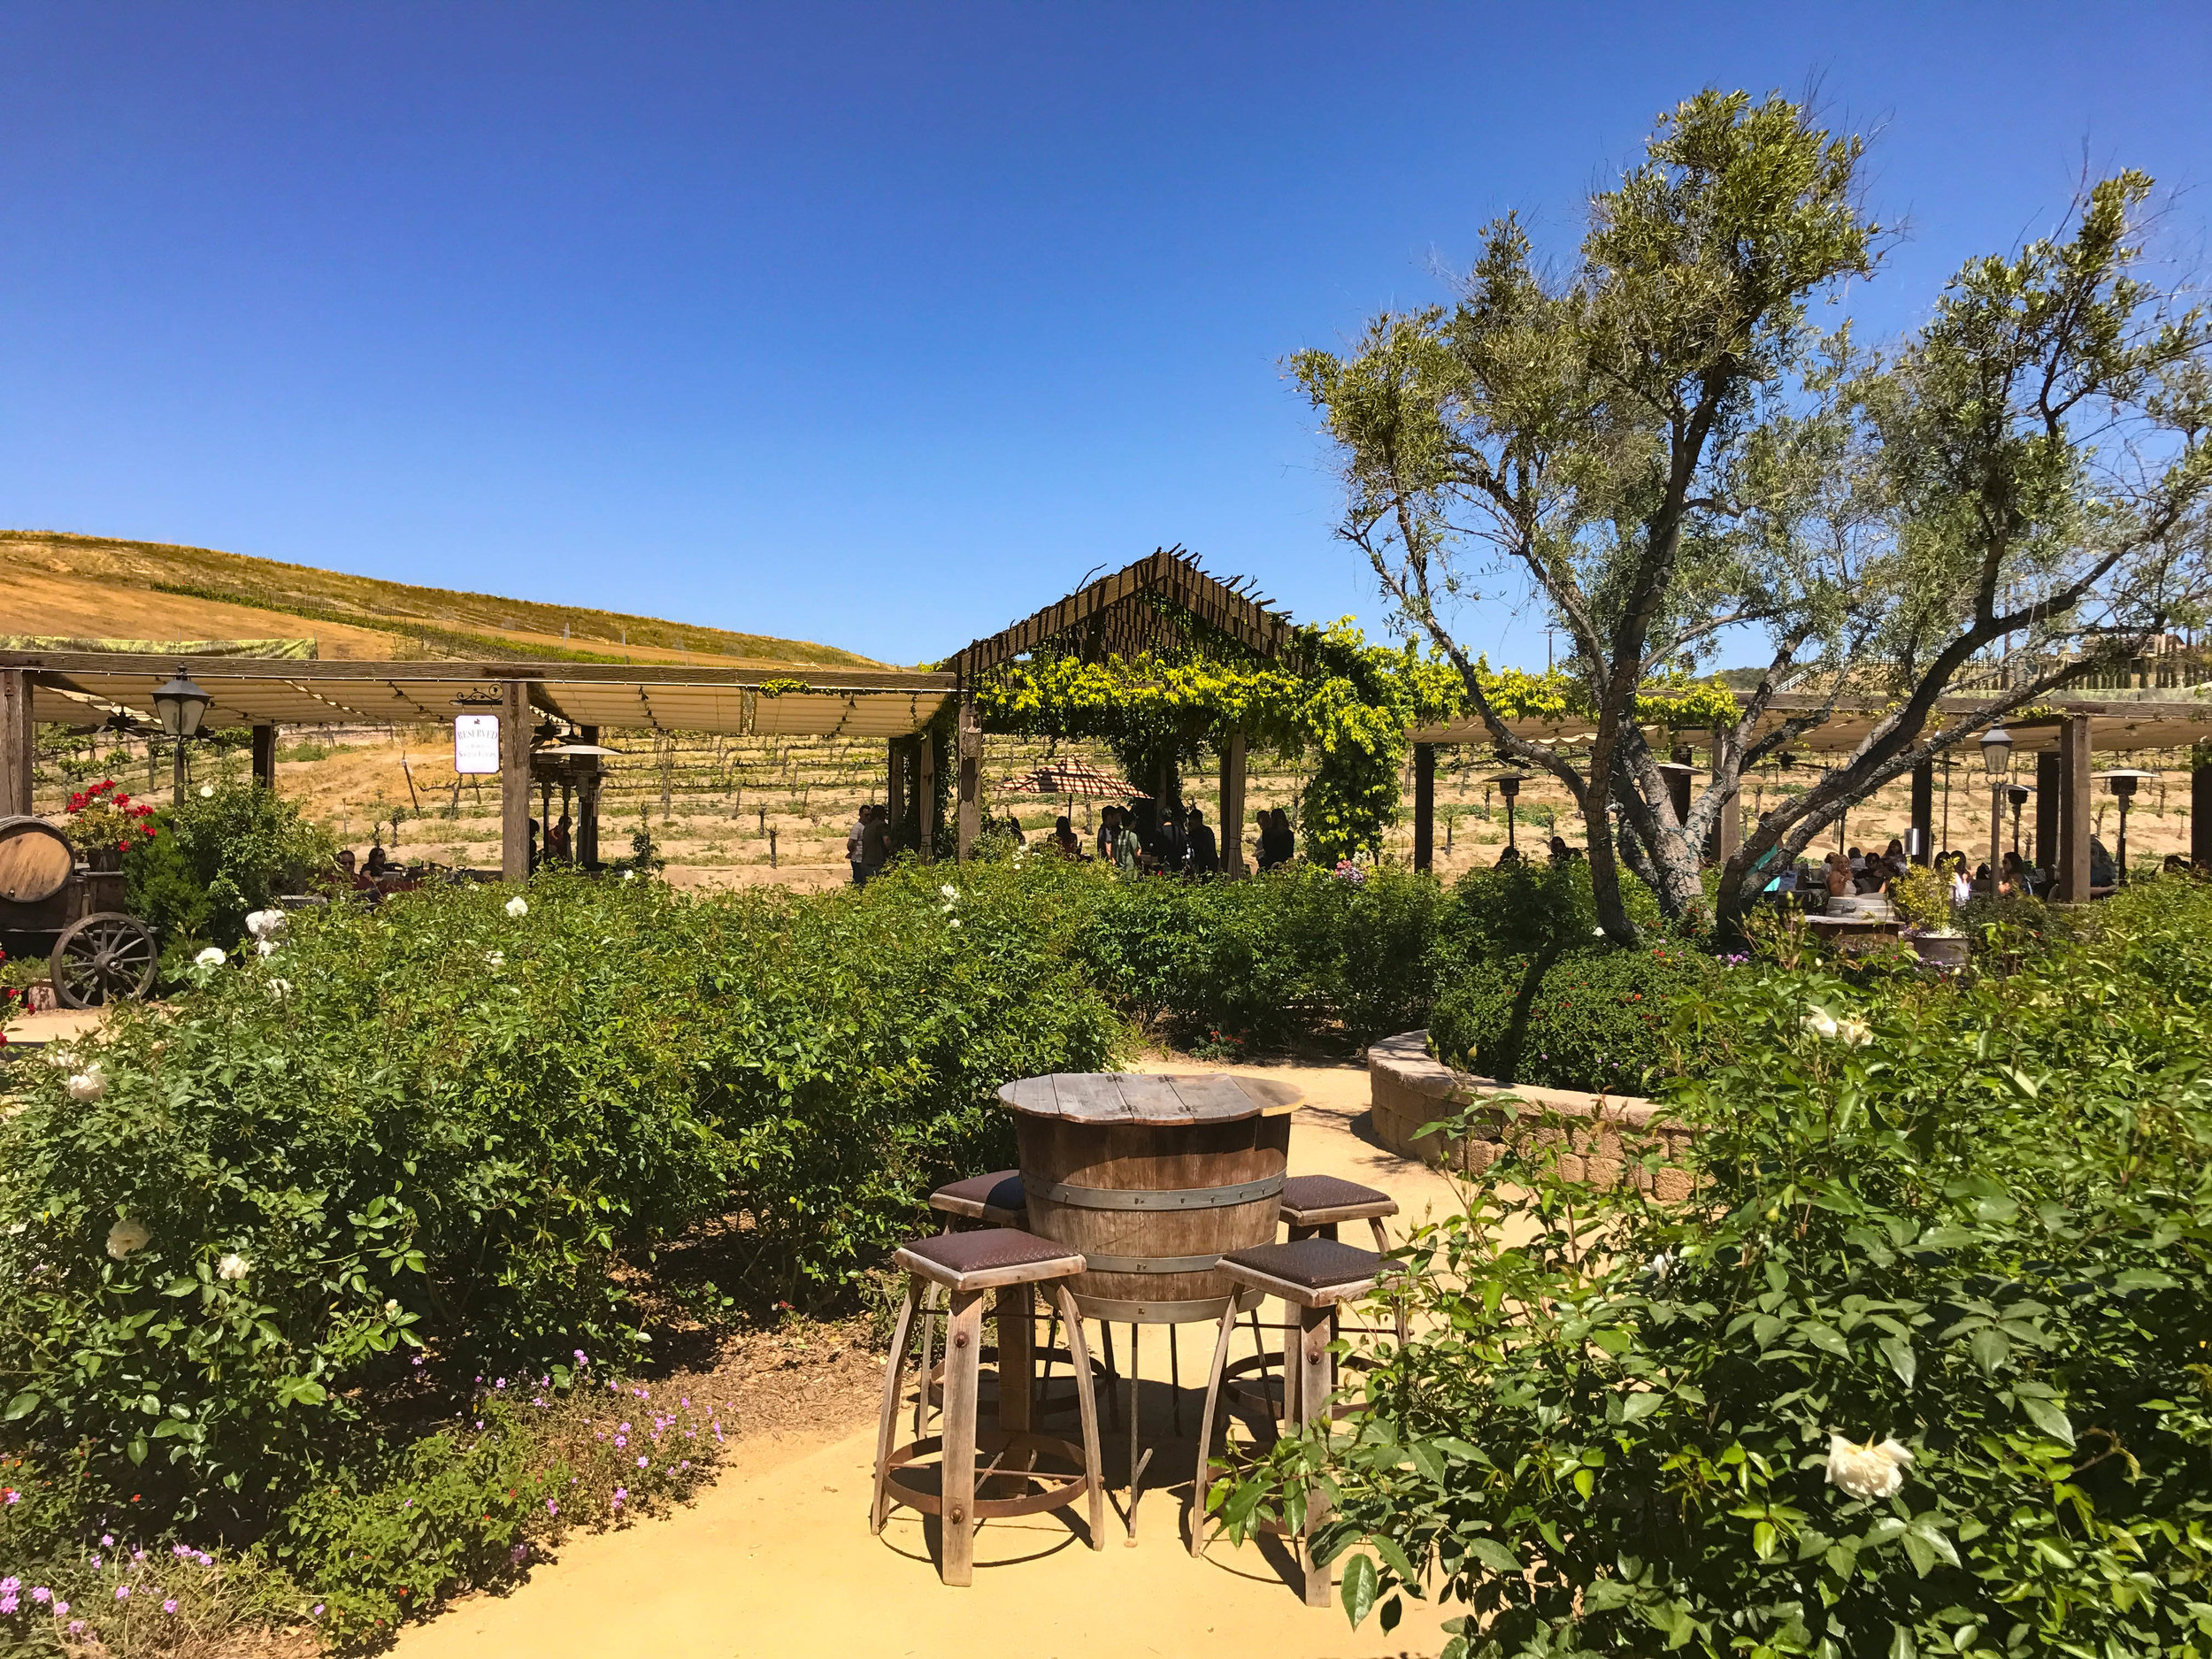 EUROPA VILLAGE WINERY - OUTSIDE TASTING BAR AND SEATING